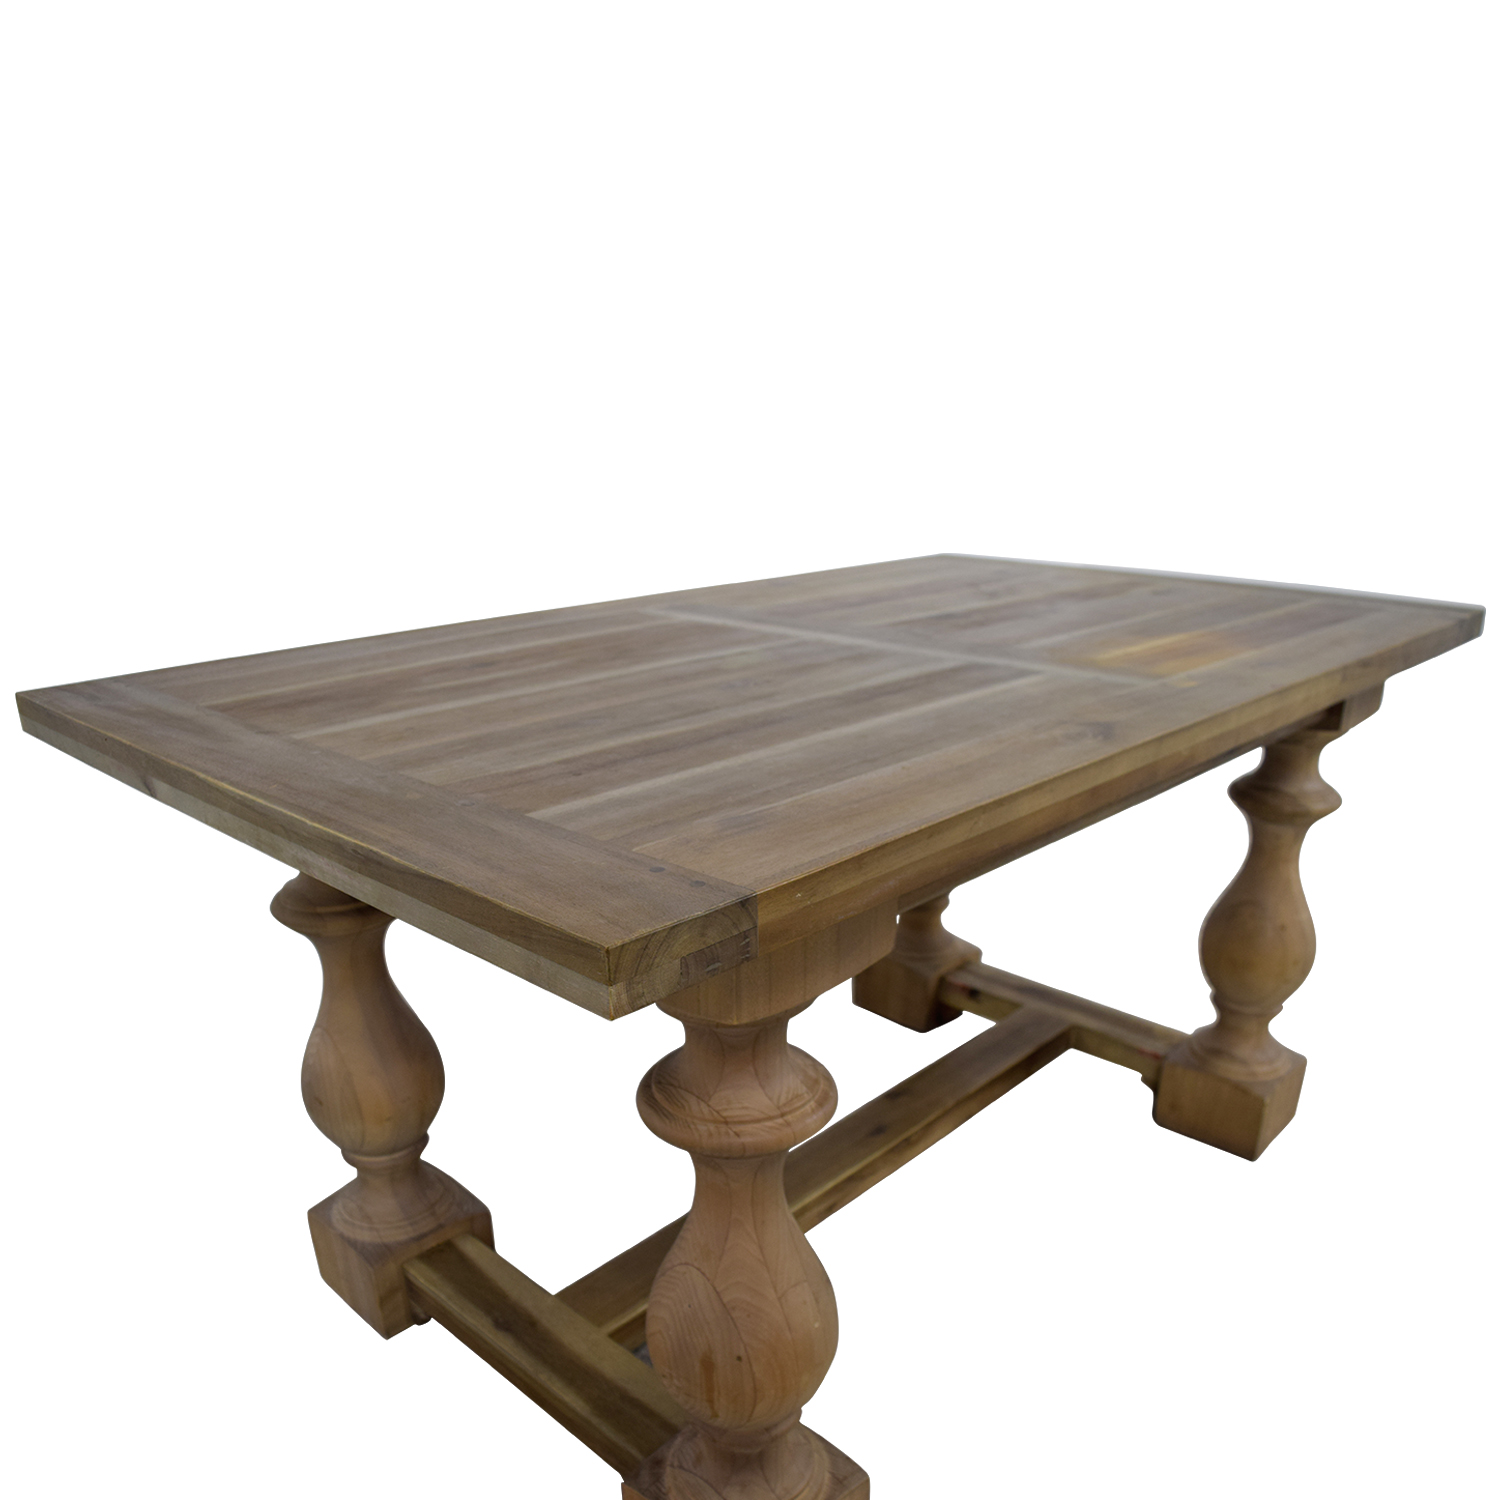 Don't have an office? Don't fret. Restoration Hardware dining tables are inspired for doubling as an off-hours desk. Grandly scaled and not the least bit fussy, Restoration Hardware dining tables are workhorses (albeit show horses too), finished in weathered .